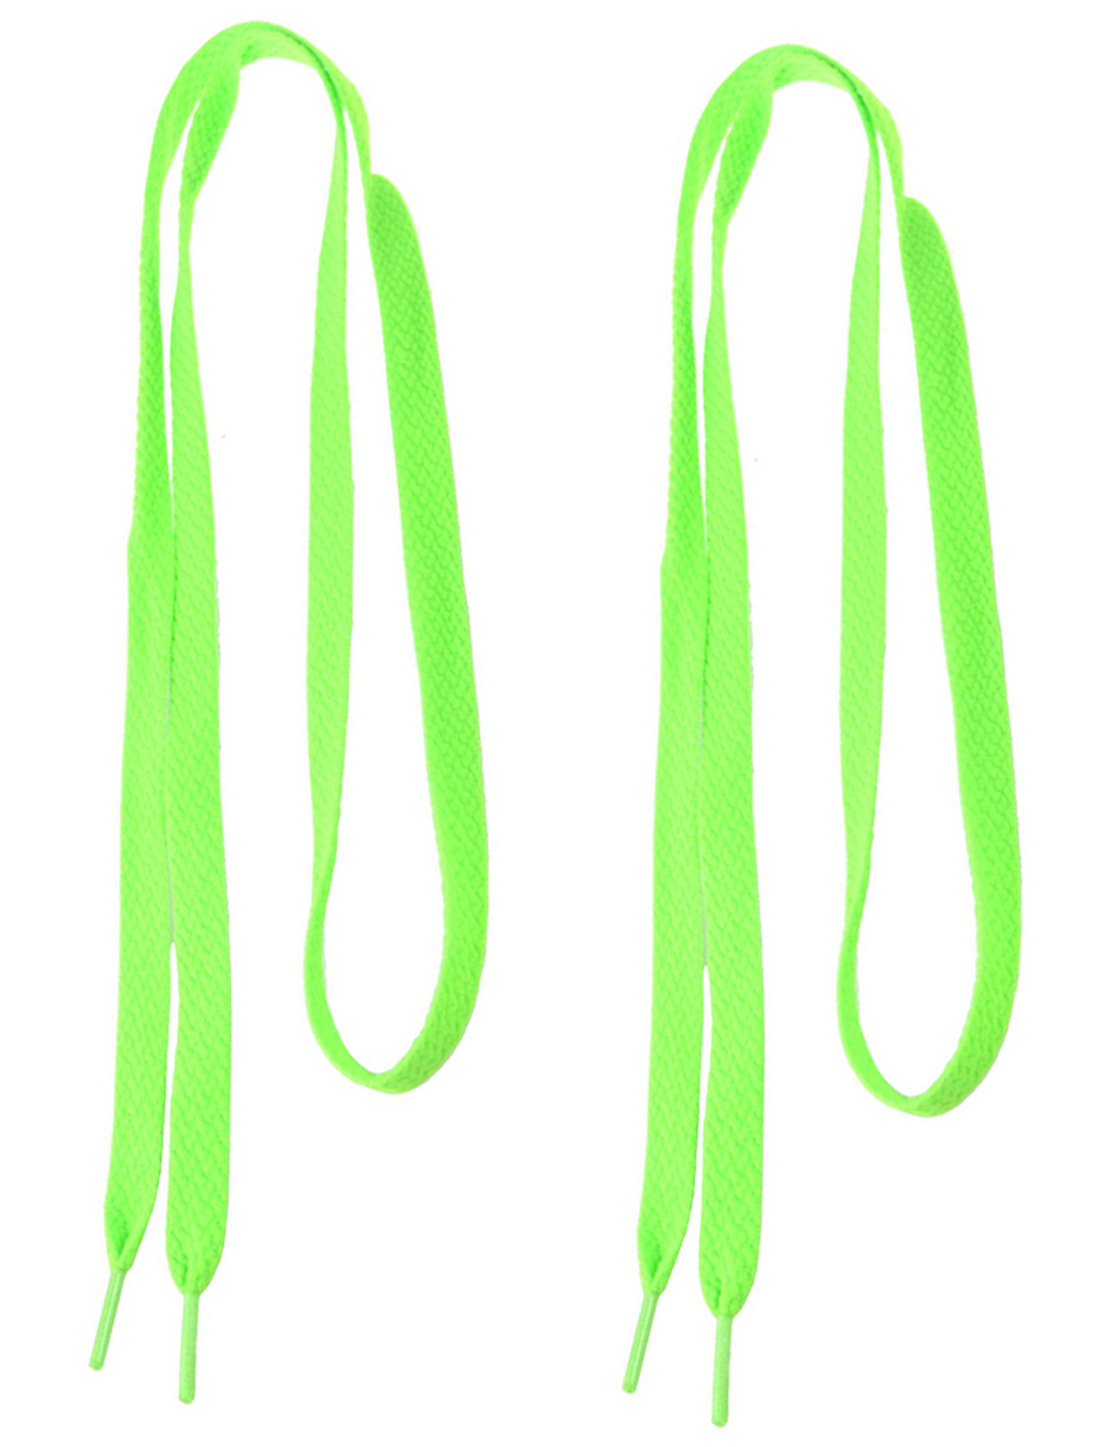 "2 Pairs Light Green Flat Strings 0.4"" Wide Shoe Laces for Sneakers"